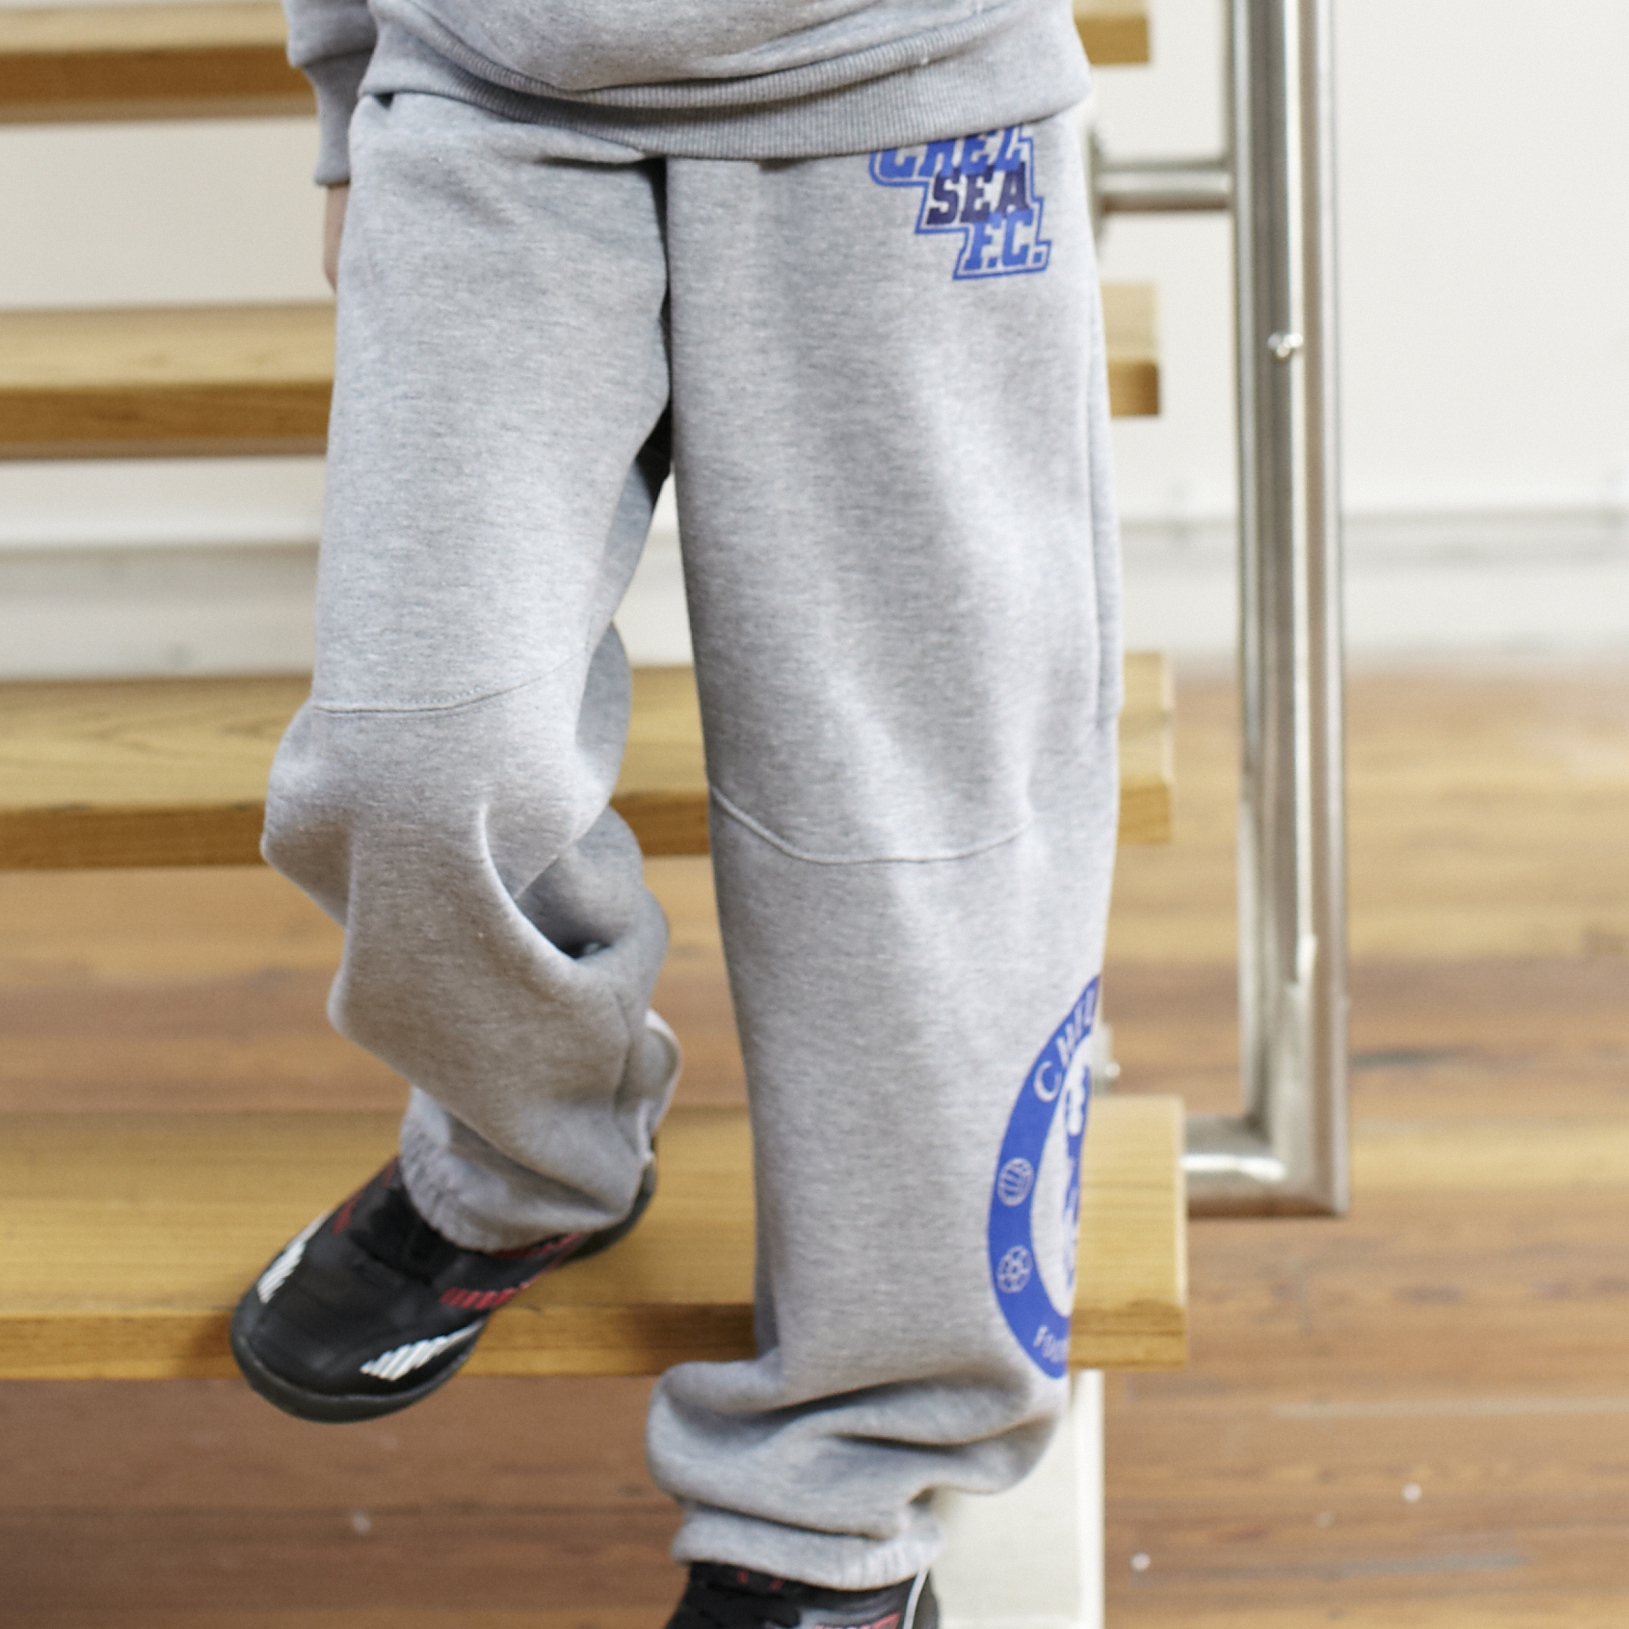 Chelsea Paneled Jog Pants - Grey Marl - Older Boys